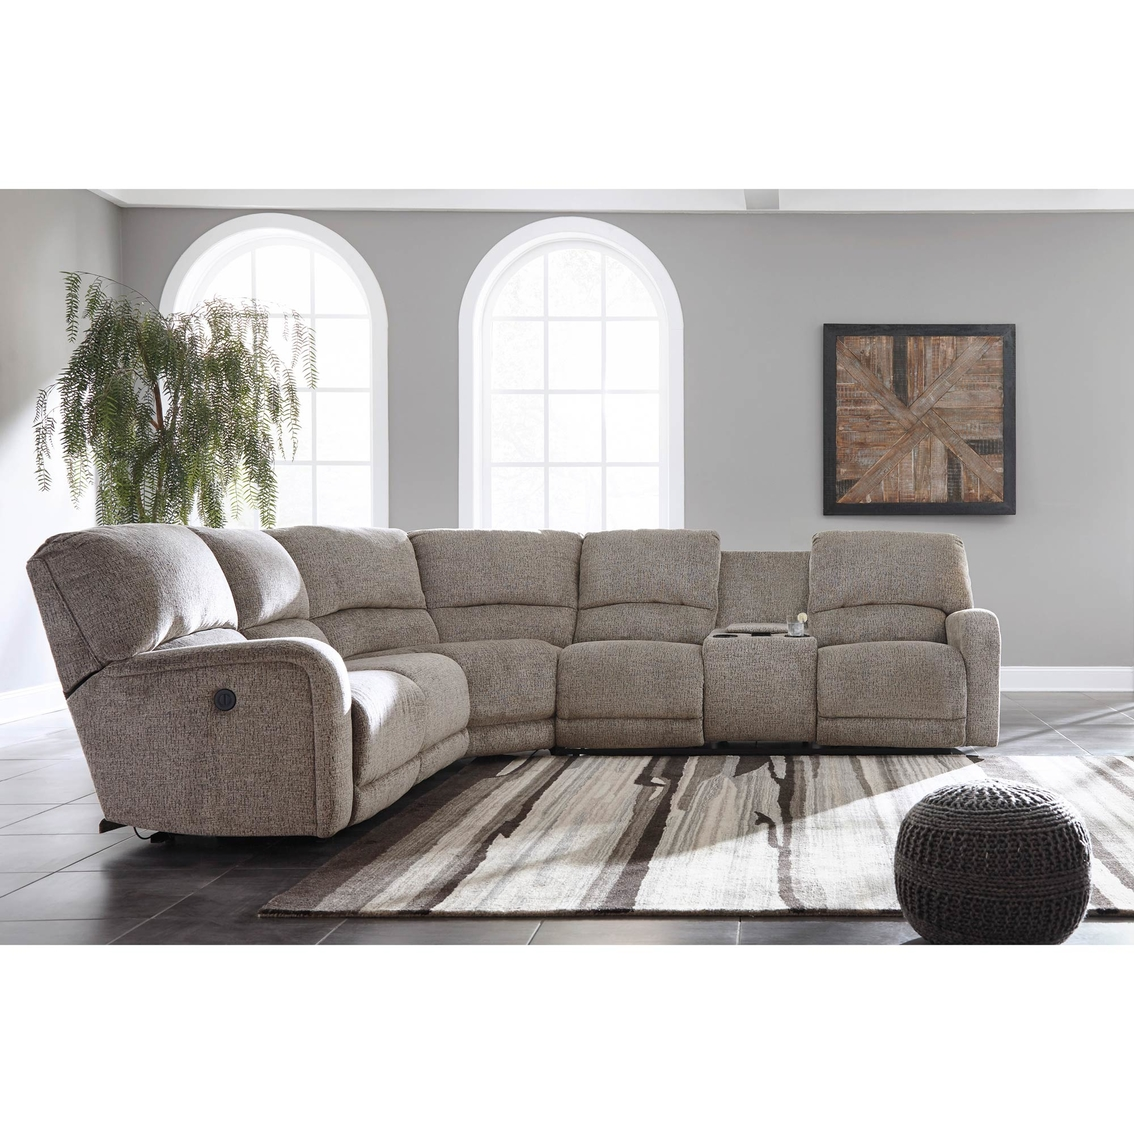 Awe Inspiring Ashley Pittsfield 4 Pc Power Reclining Sectional Raf Uwap Interior Chair Design Uwaporg